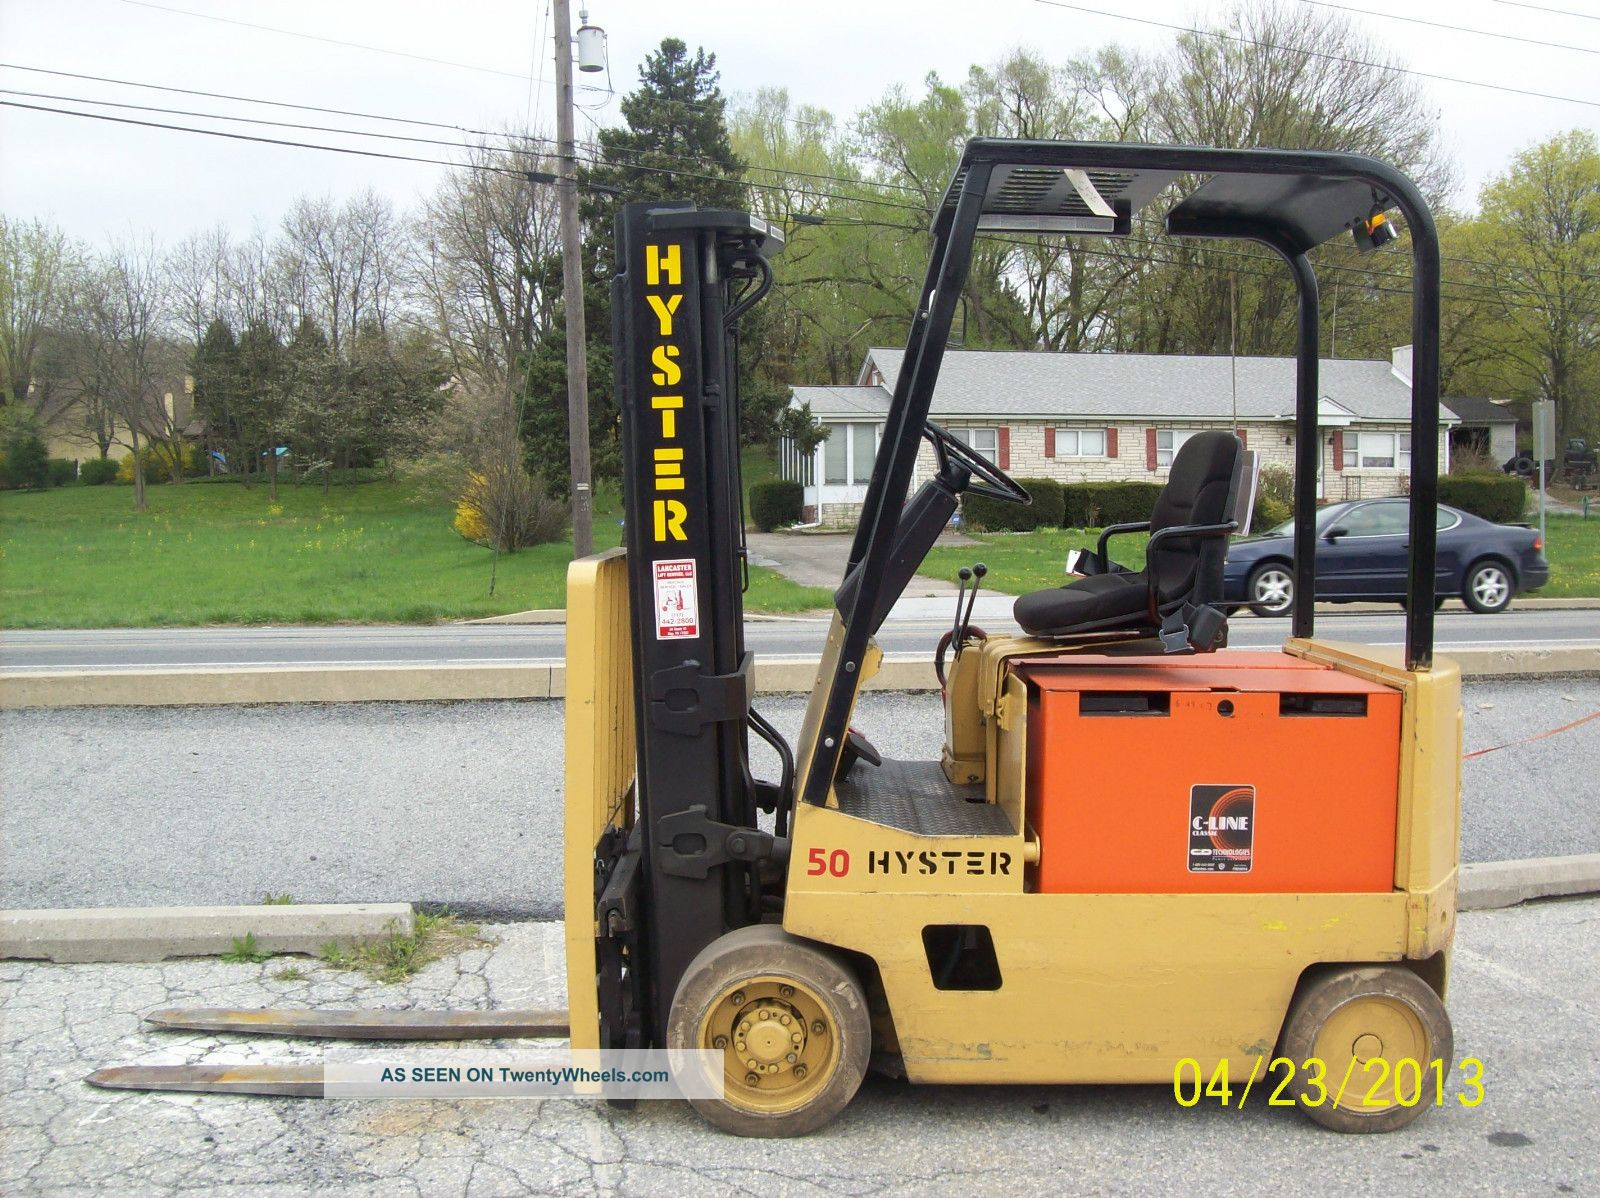 1985 Hyster Electric 36 Volt 5000 Lb Forklift 530 Forklifts & Other Lifts photo